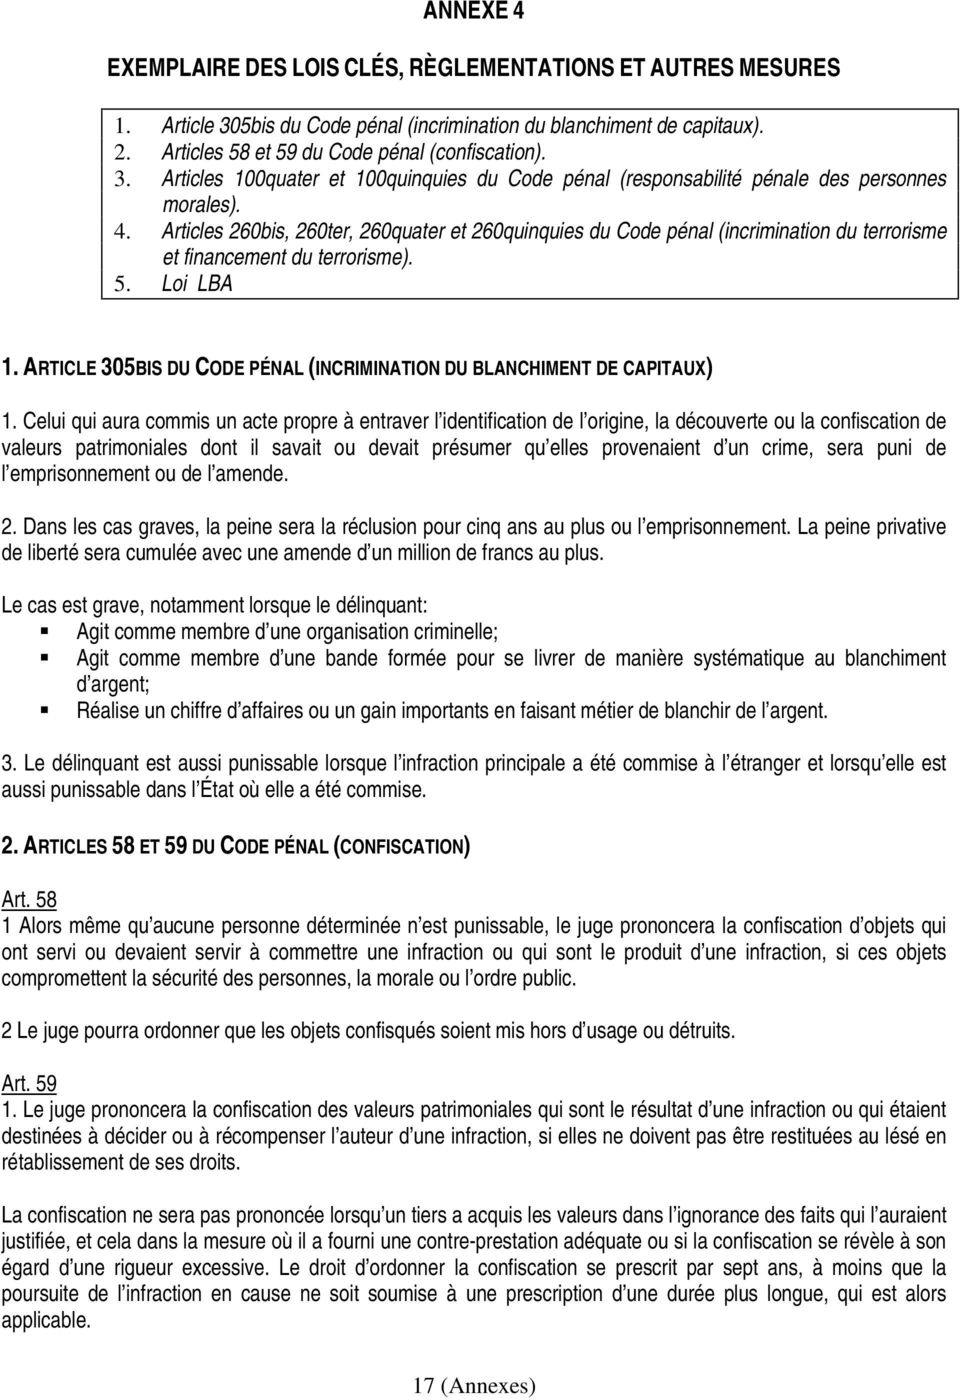 ARTICLE 305BIS DU CODE PÉNAL (INCRIMINATION DU BLANCHIMENT DE CAPITAUX) 1.